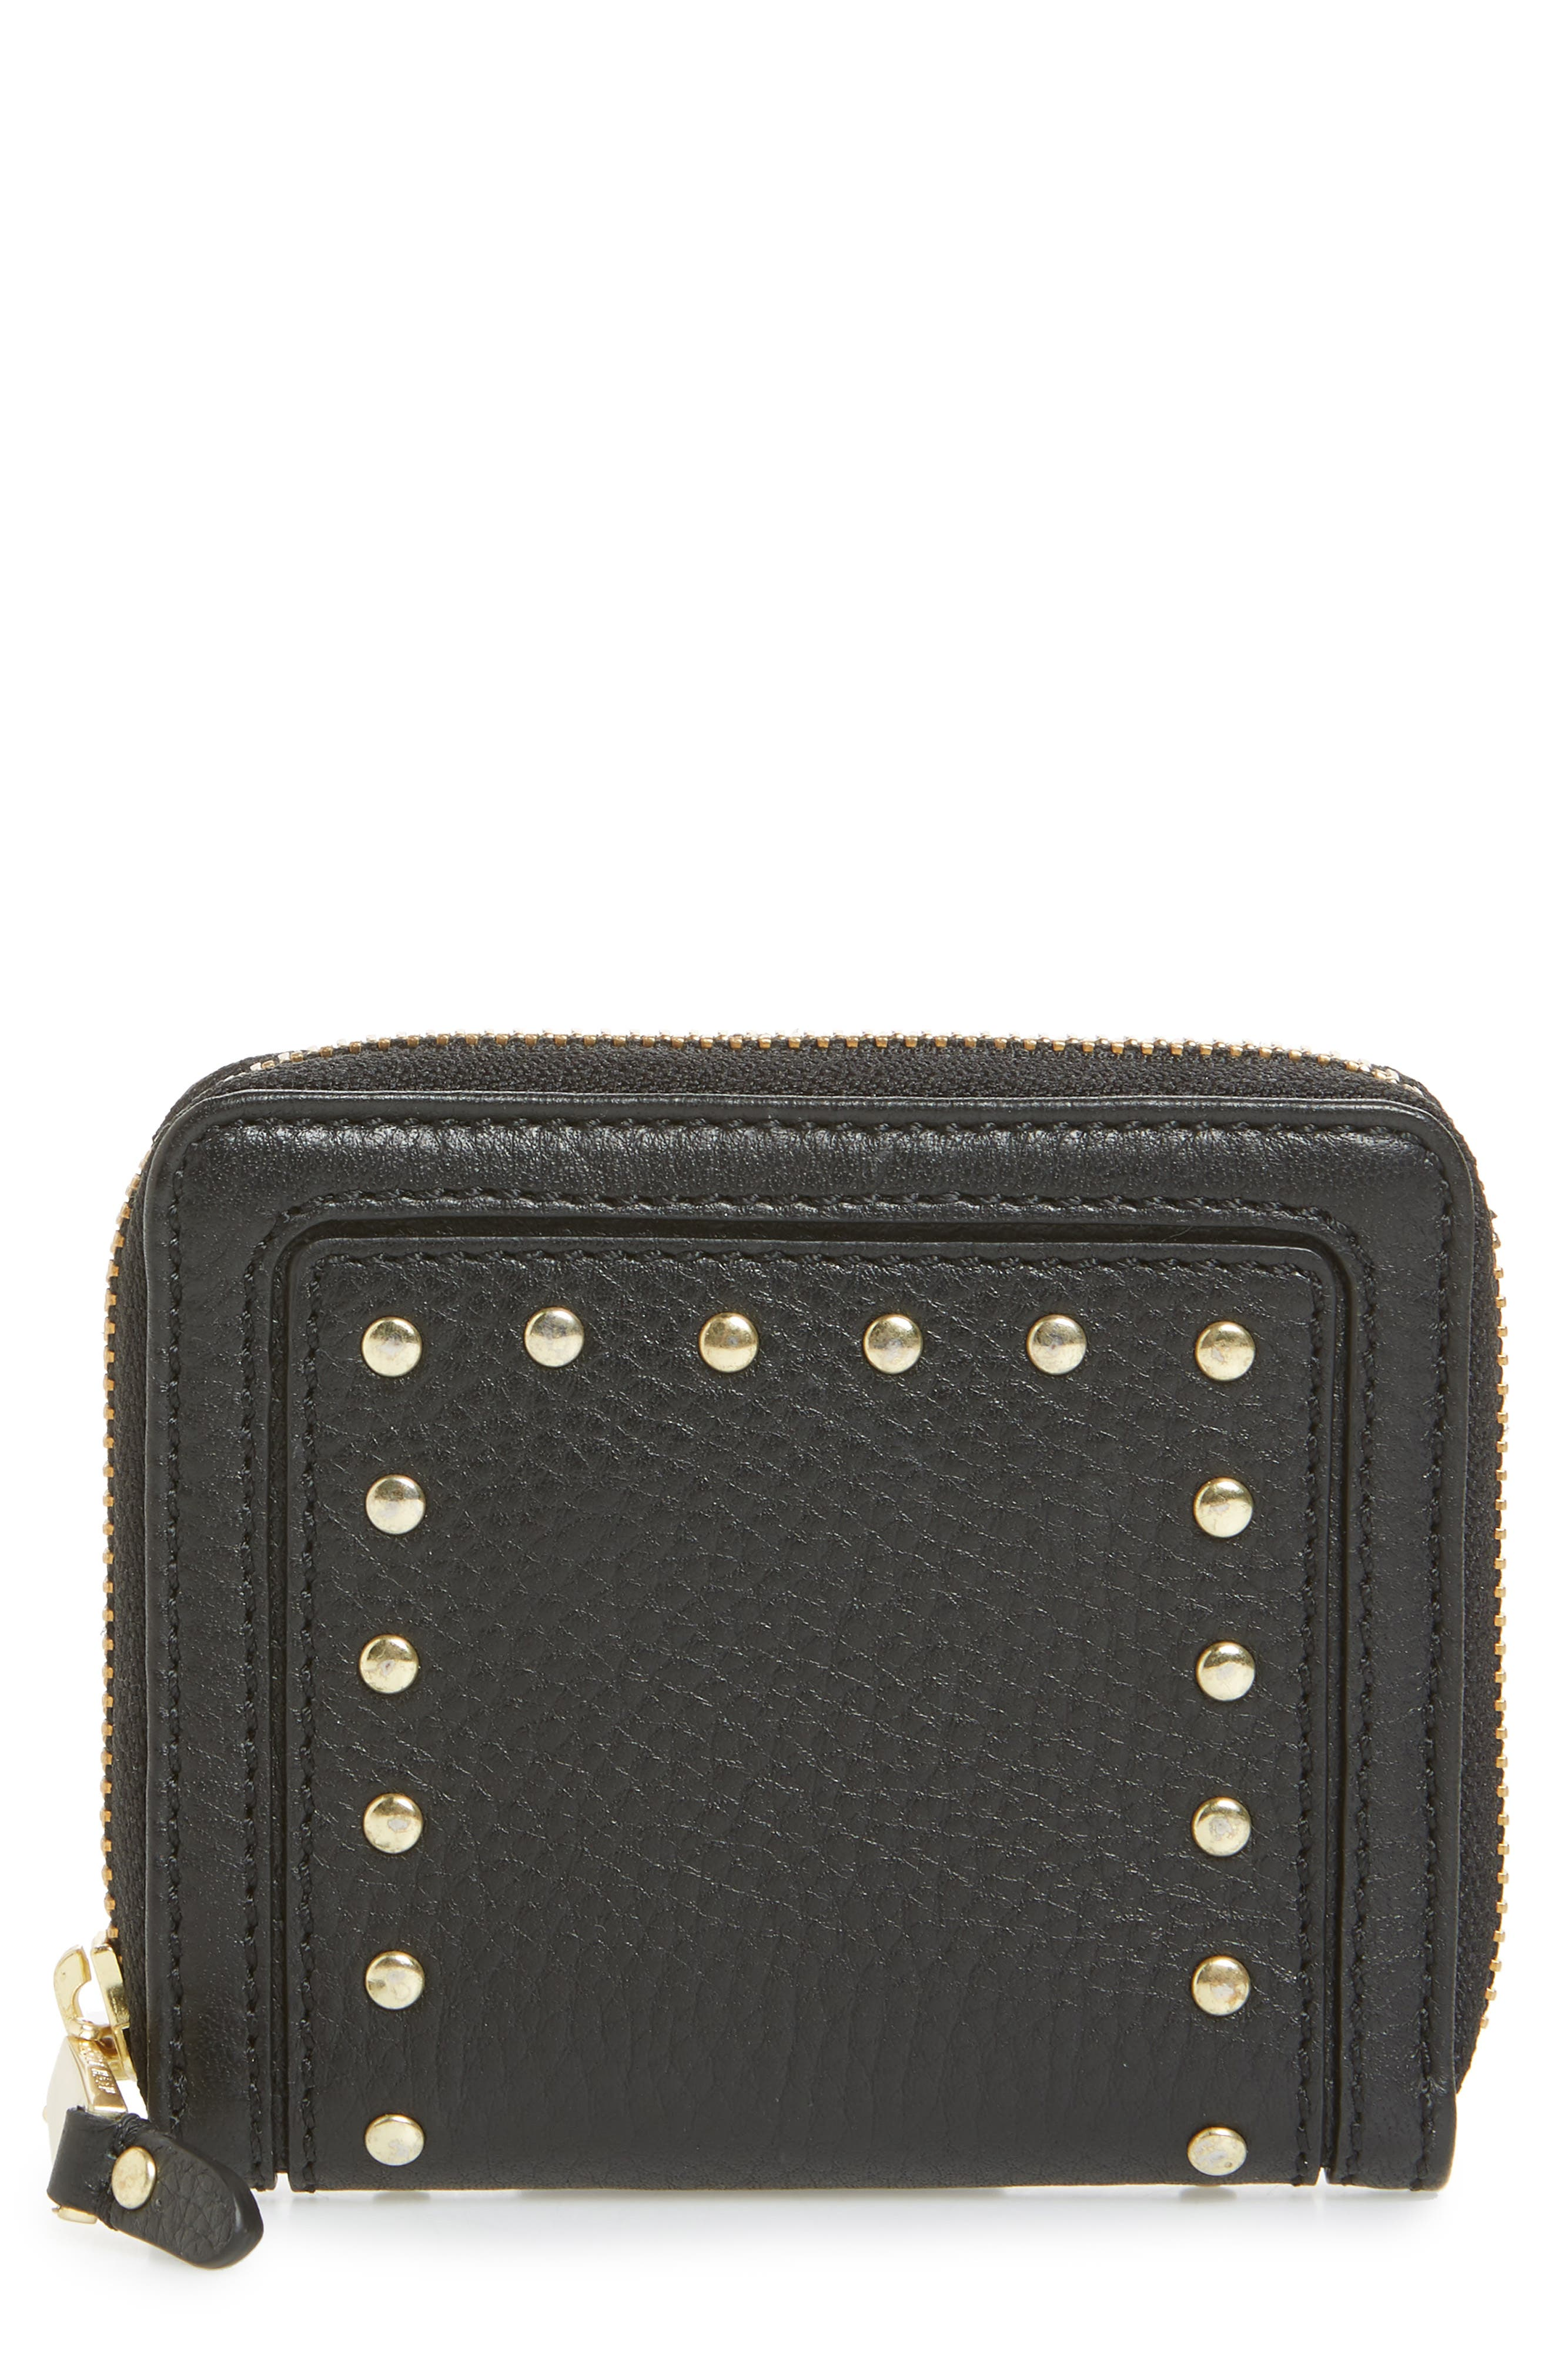 Cassidy Small RFID Leather Zip Wallet,                             Main thumbnail 1, color,                             001